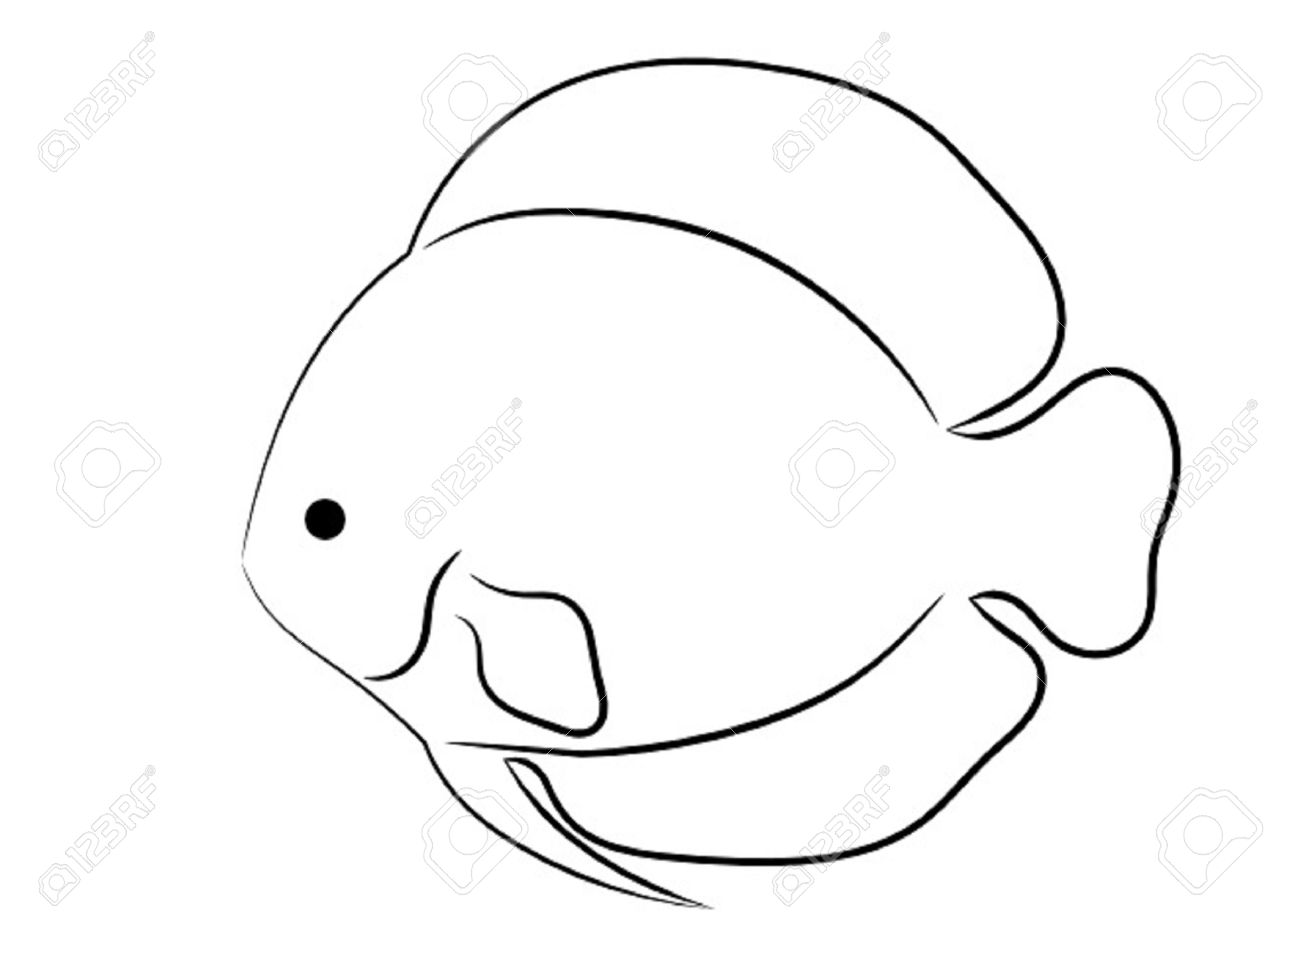 Fish Drawing Outline at GetDrawings.com | Free for personal use Fish ...